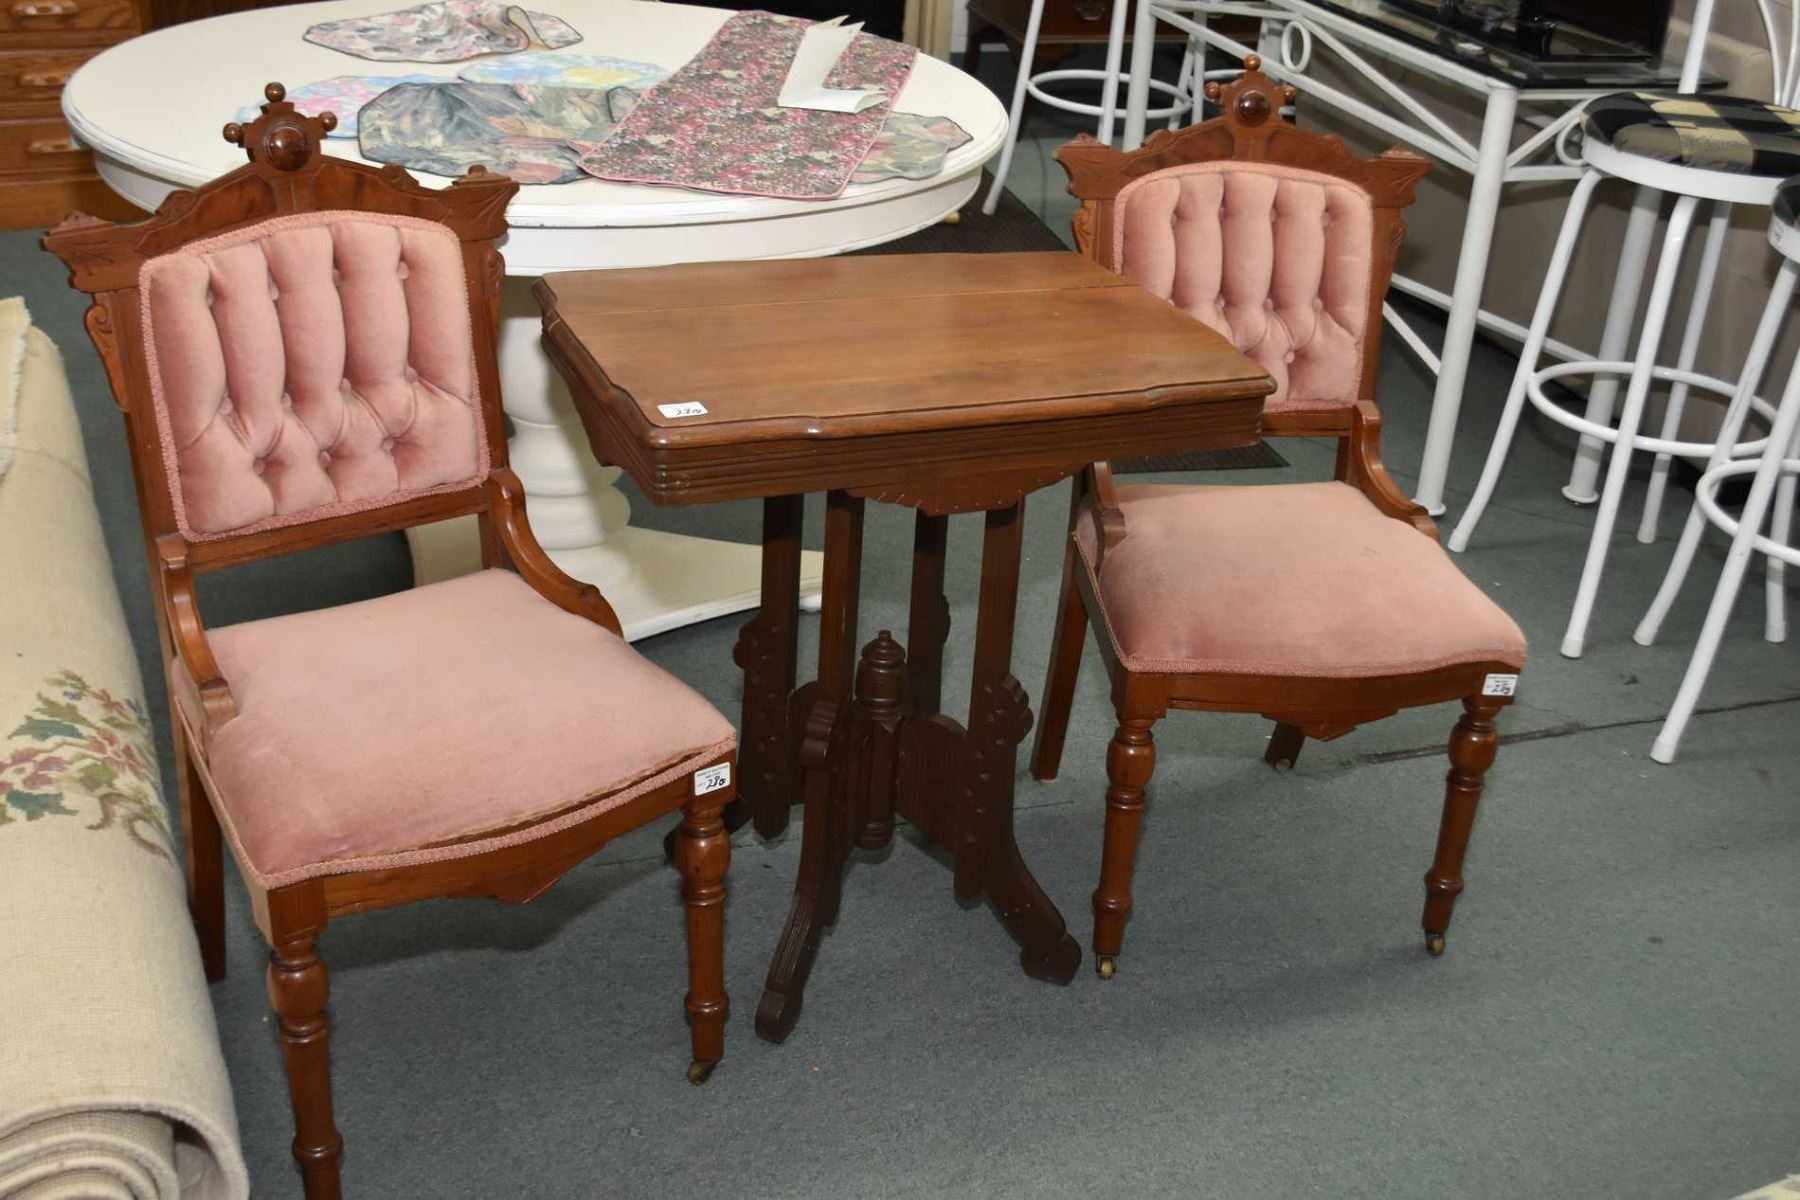 Image 1 : Three Pieces Of Antique Eastlake Furniture Including Two Tufted  Side Chairs And A